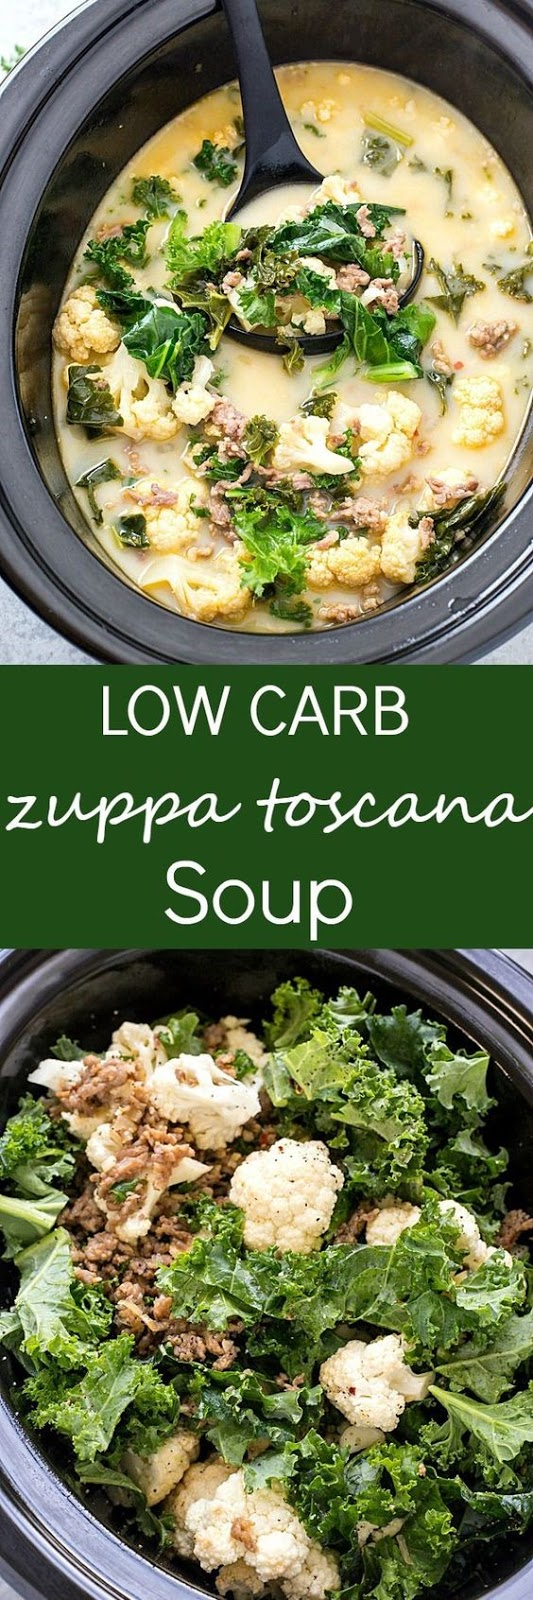 Slow Cooker Low Carb Zuppa Toscana Soup